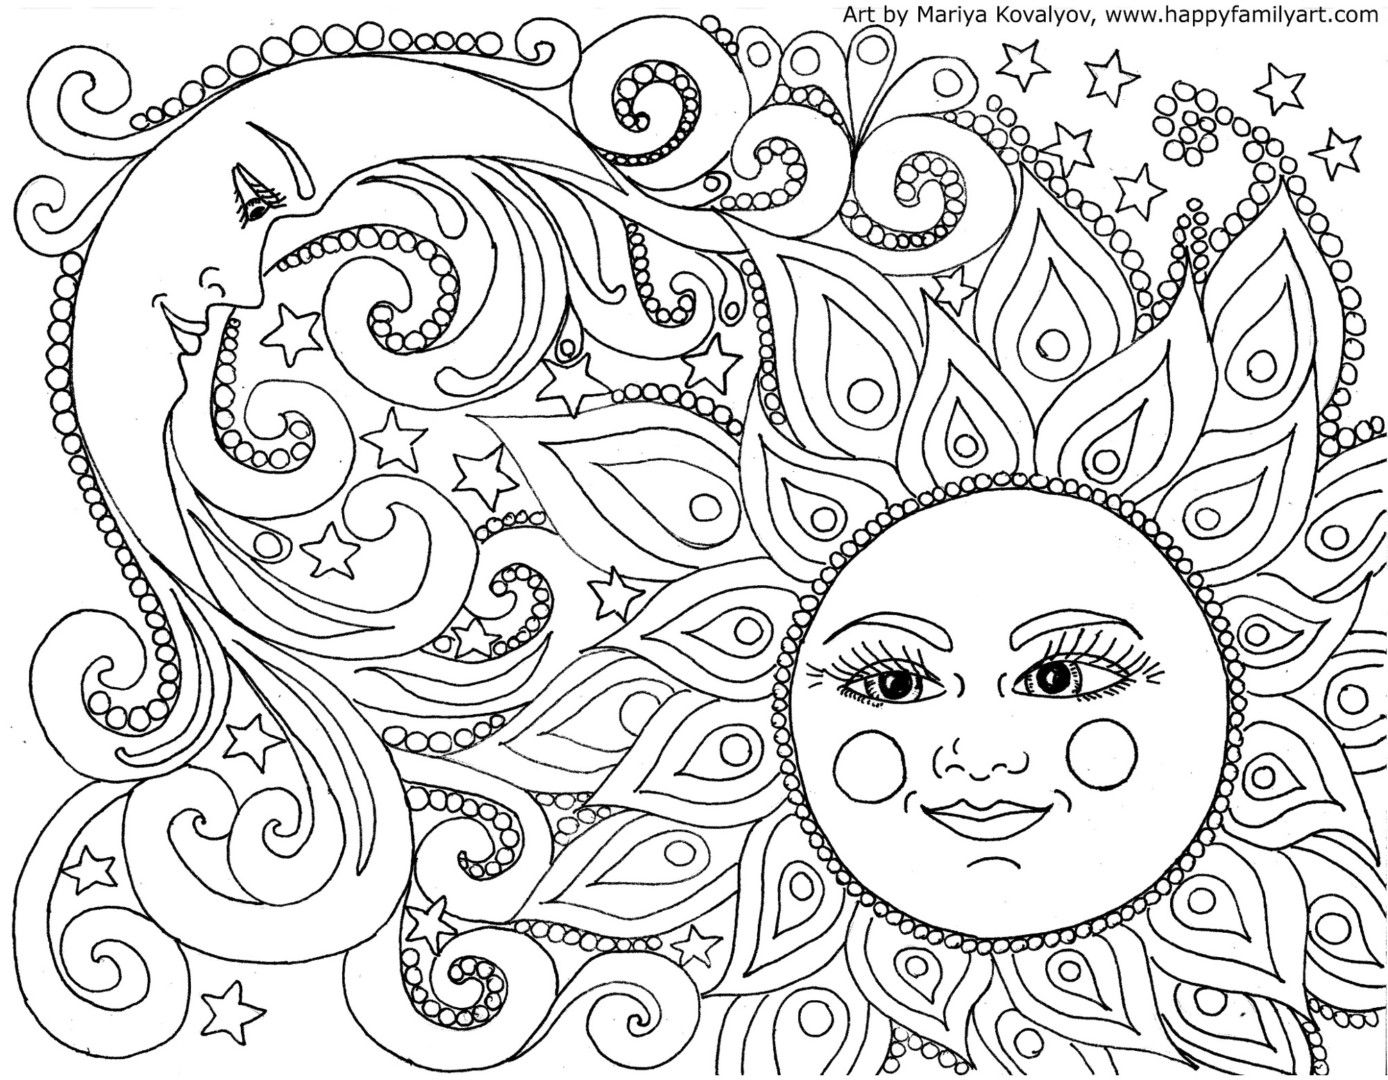 Coloringsco Fun Coloring Pages For Adults